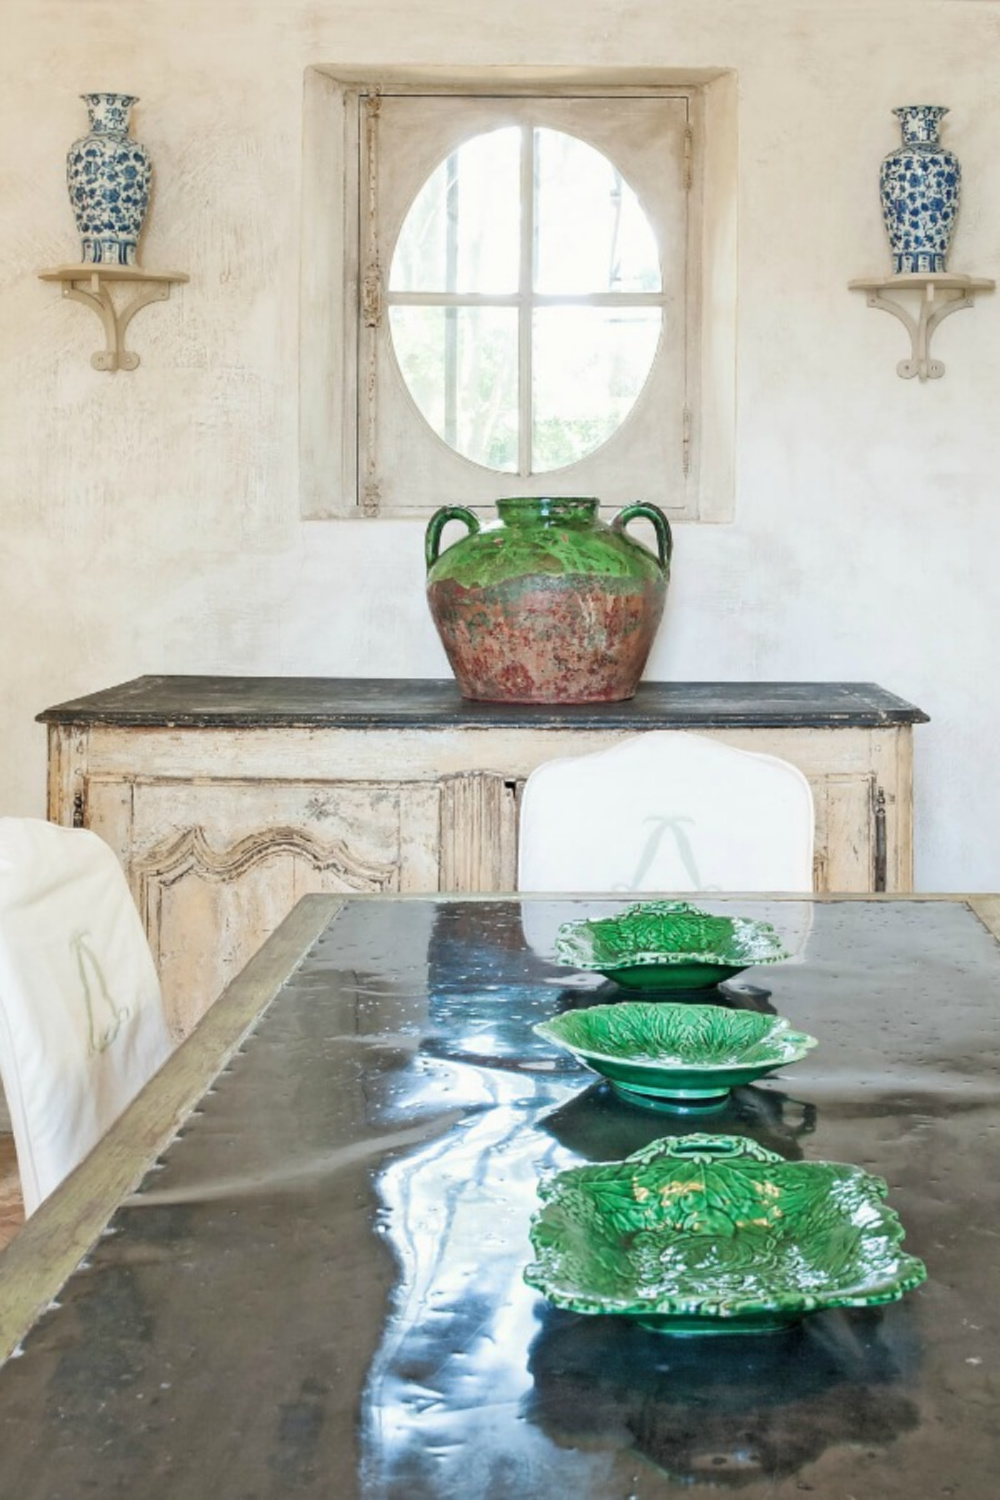 Rustic and elegant: Provençal home, European farmhouse, French farmhouse, and French country design inspiration from Château Mireille. Come score ideas for a Timeless and Tranquil European Country Inspired Look. #europeancountry #interiordesign #frenchcountry